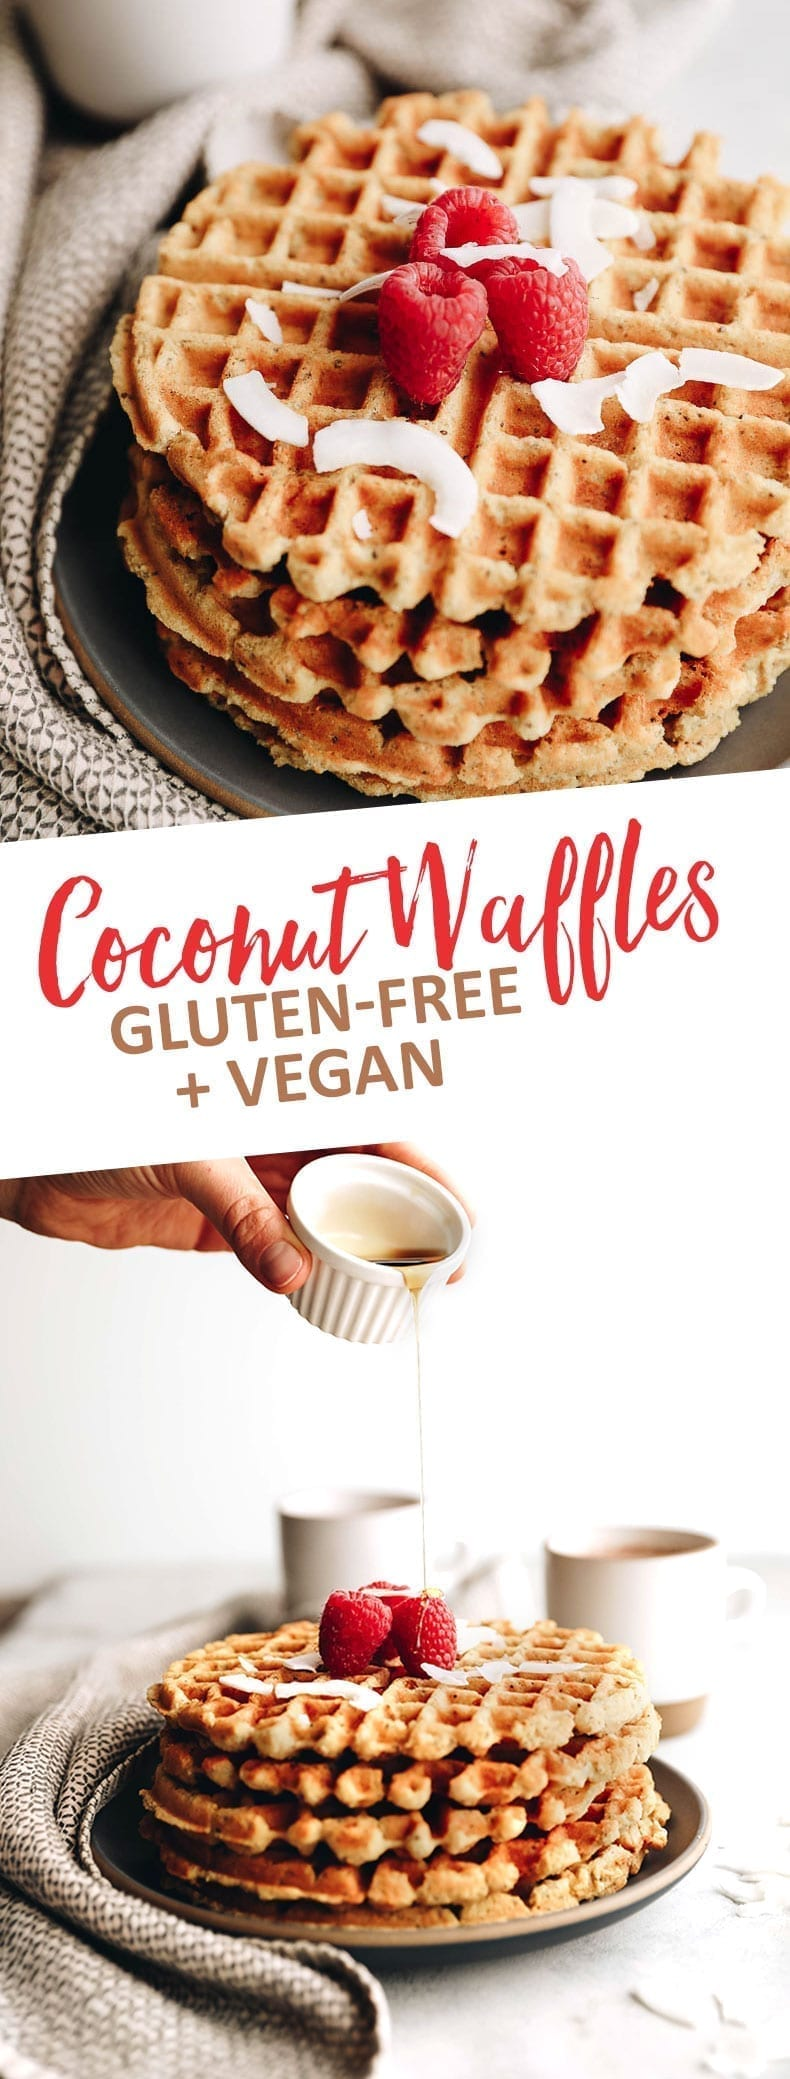 Coconut Waffles - Vegan and Gluten-free. Made with coconut flour and chia seeds this waffle recipe makes the ultimate healthy breakfast recipe everyone will enjoy. #glutenfree #vegan